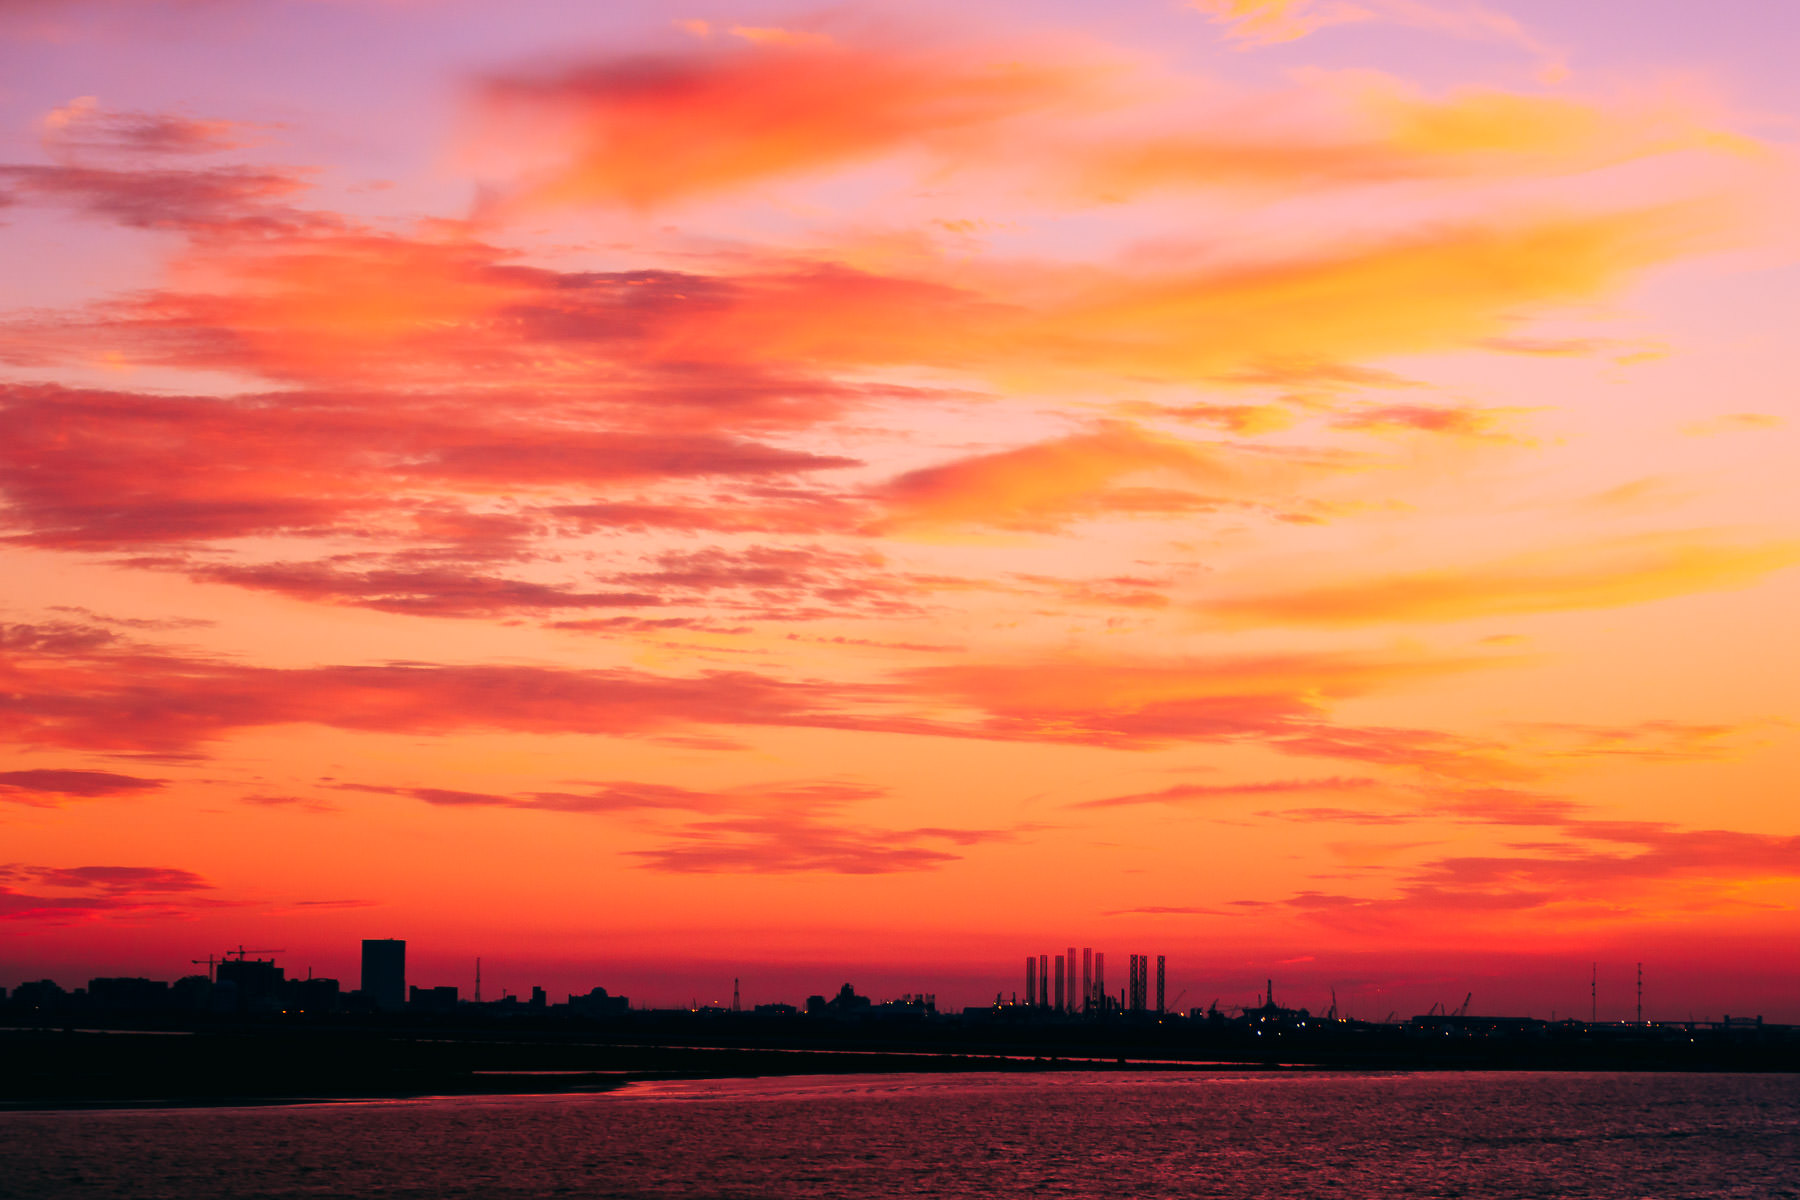 The skyline of Galveston, Texas, is silhouetted by the setting sun.